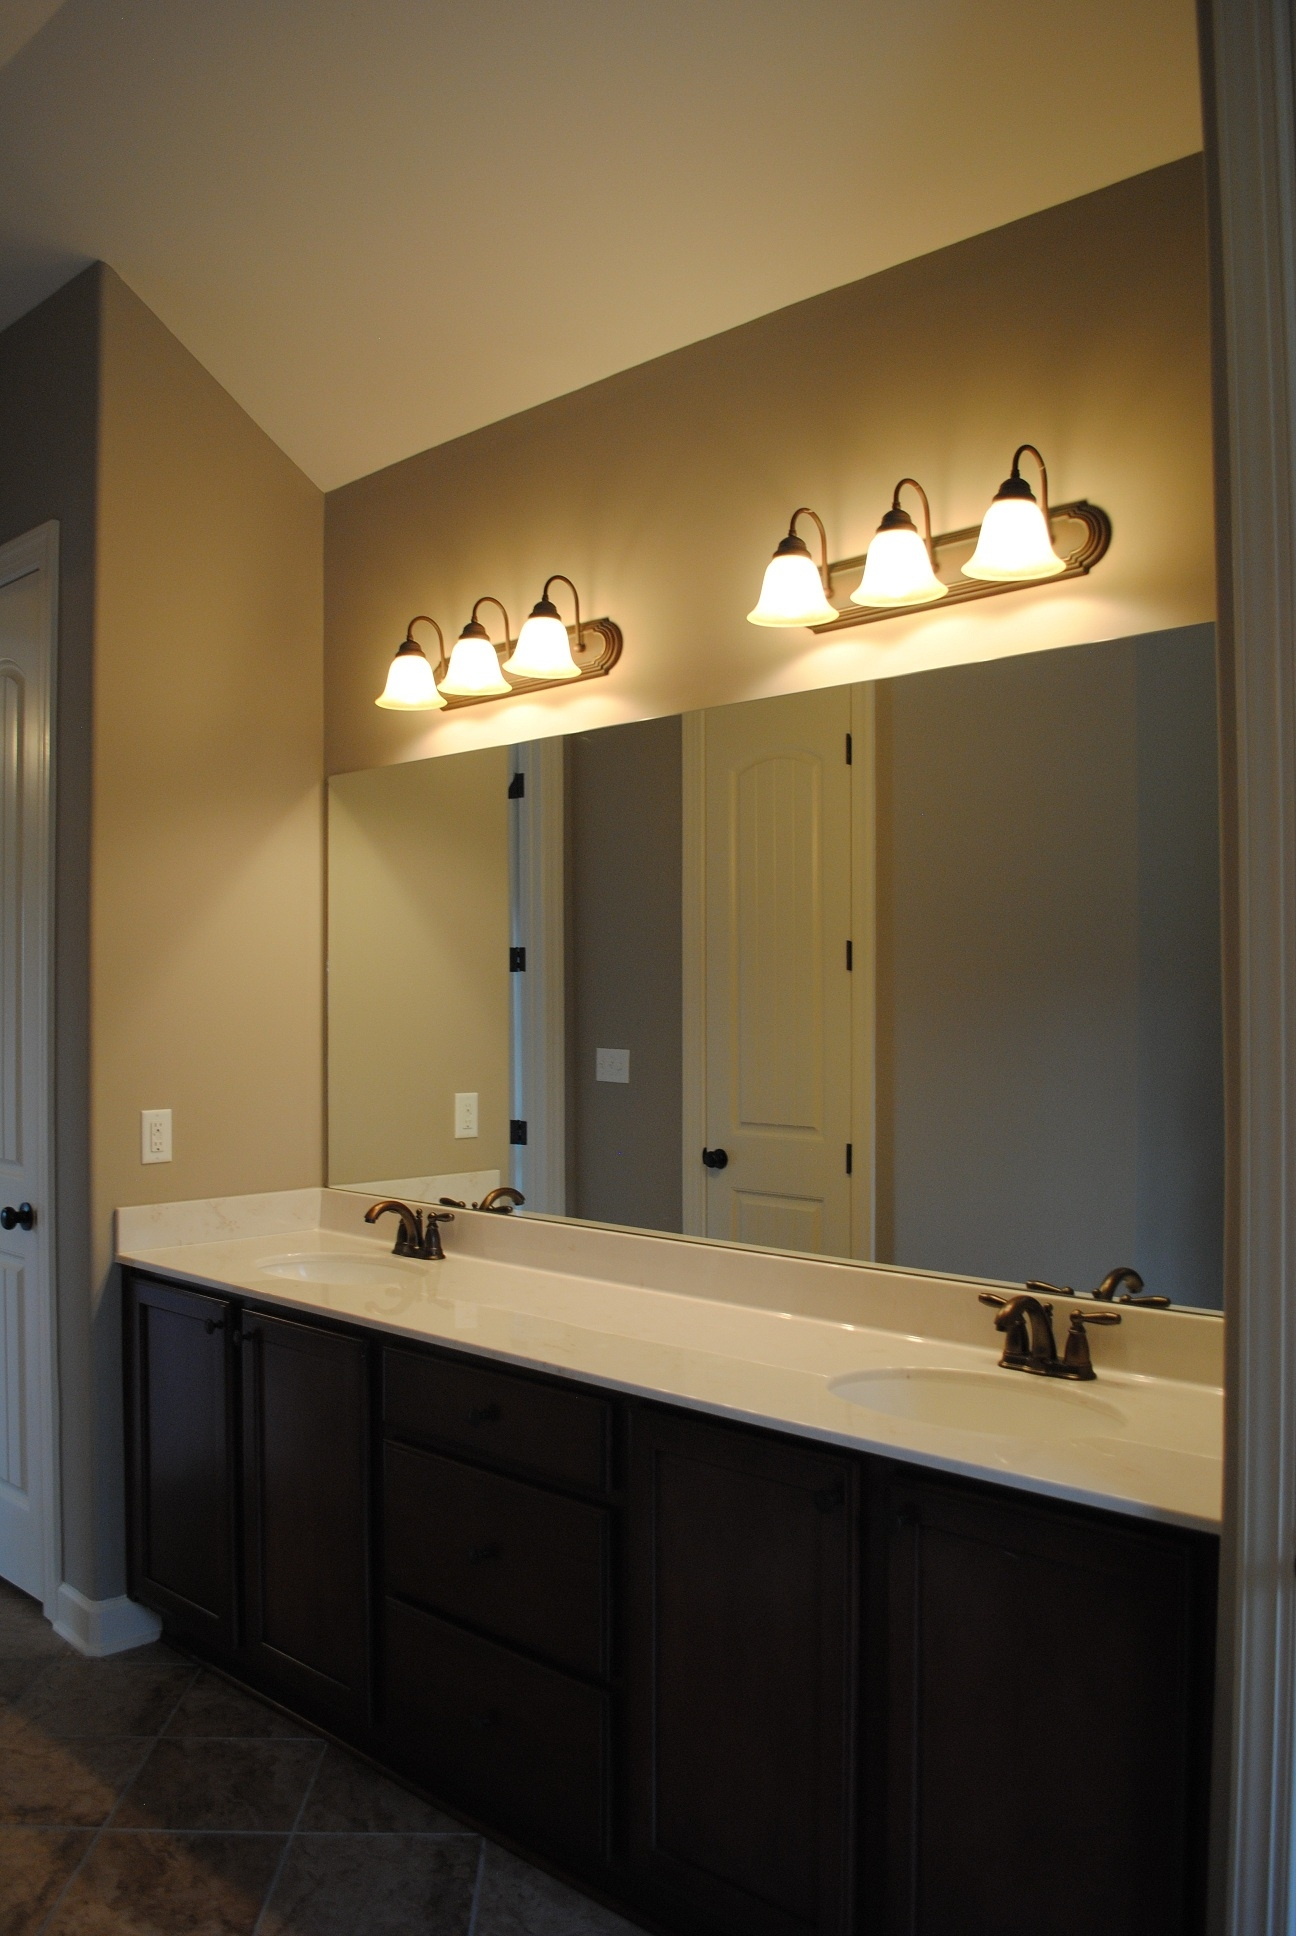 Permalink to Bathroom Vanity Mirror Lighting Ideas